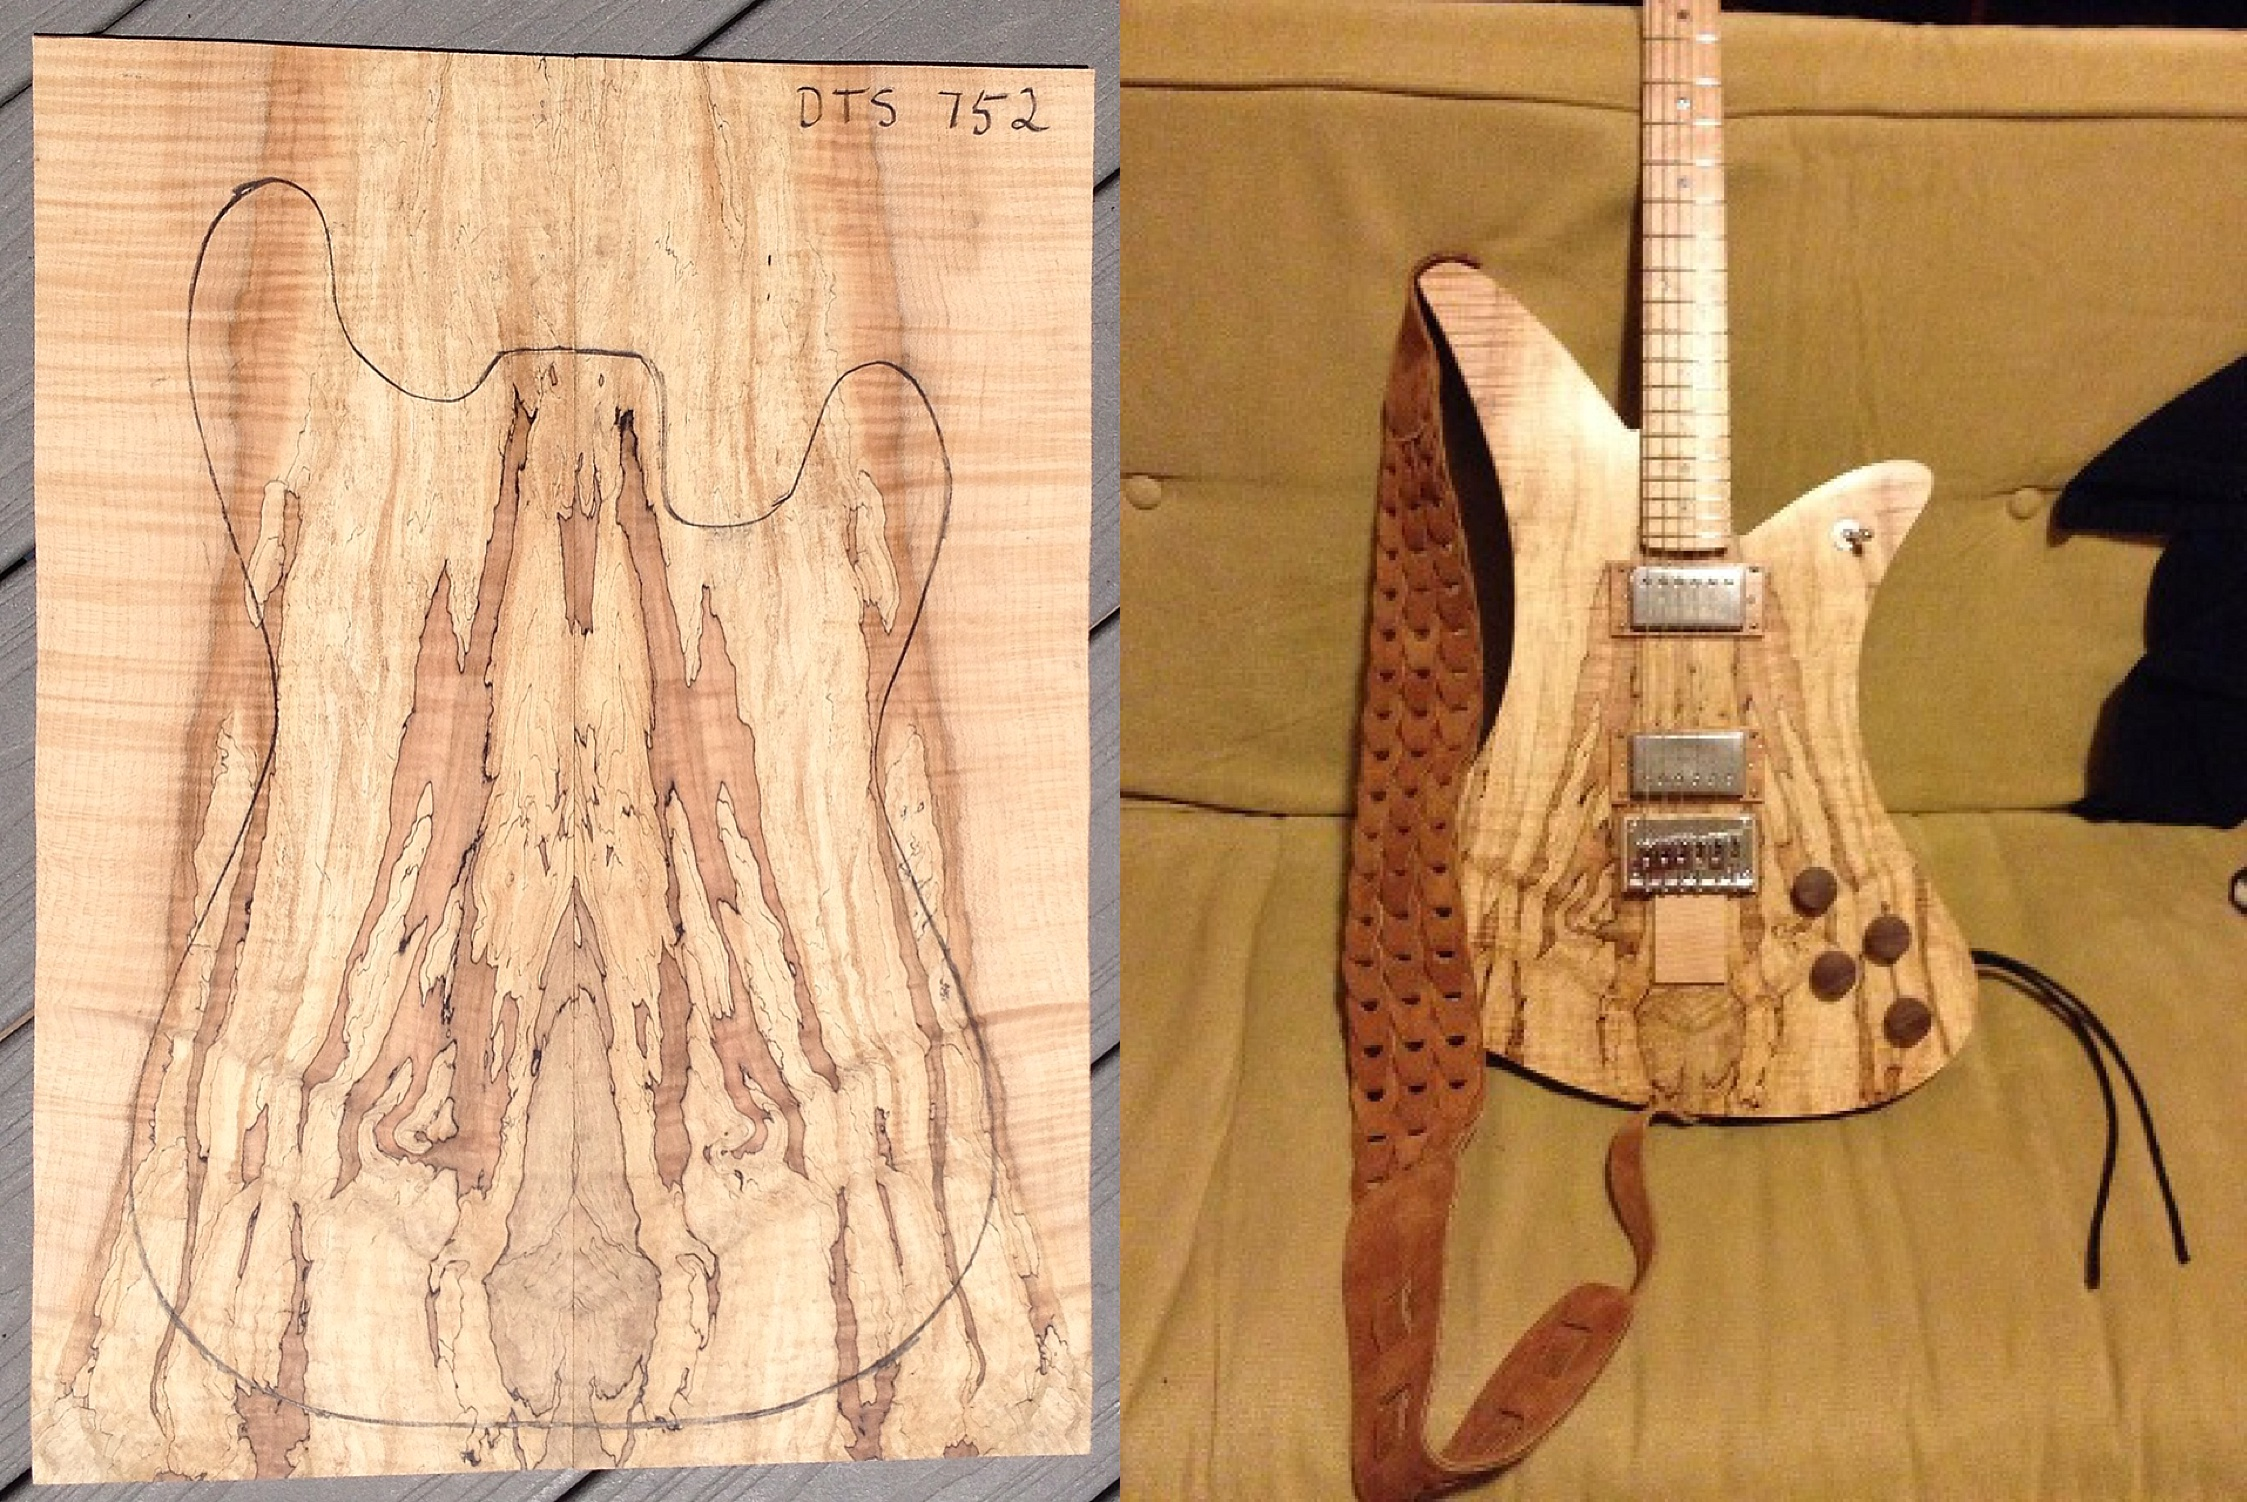 roasted-wood-guitar-before-after.jpg